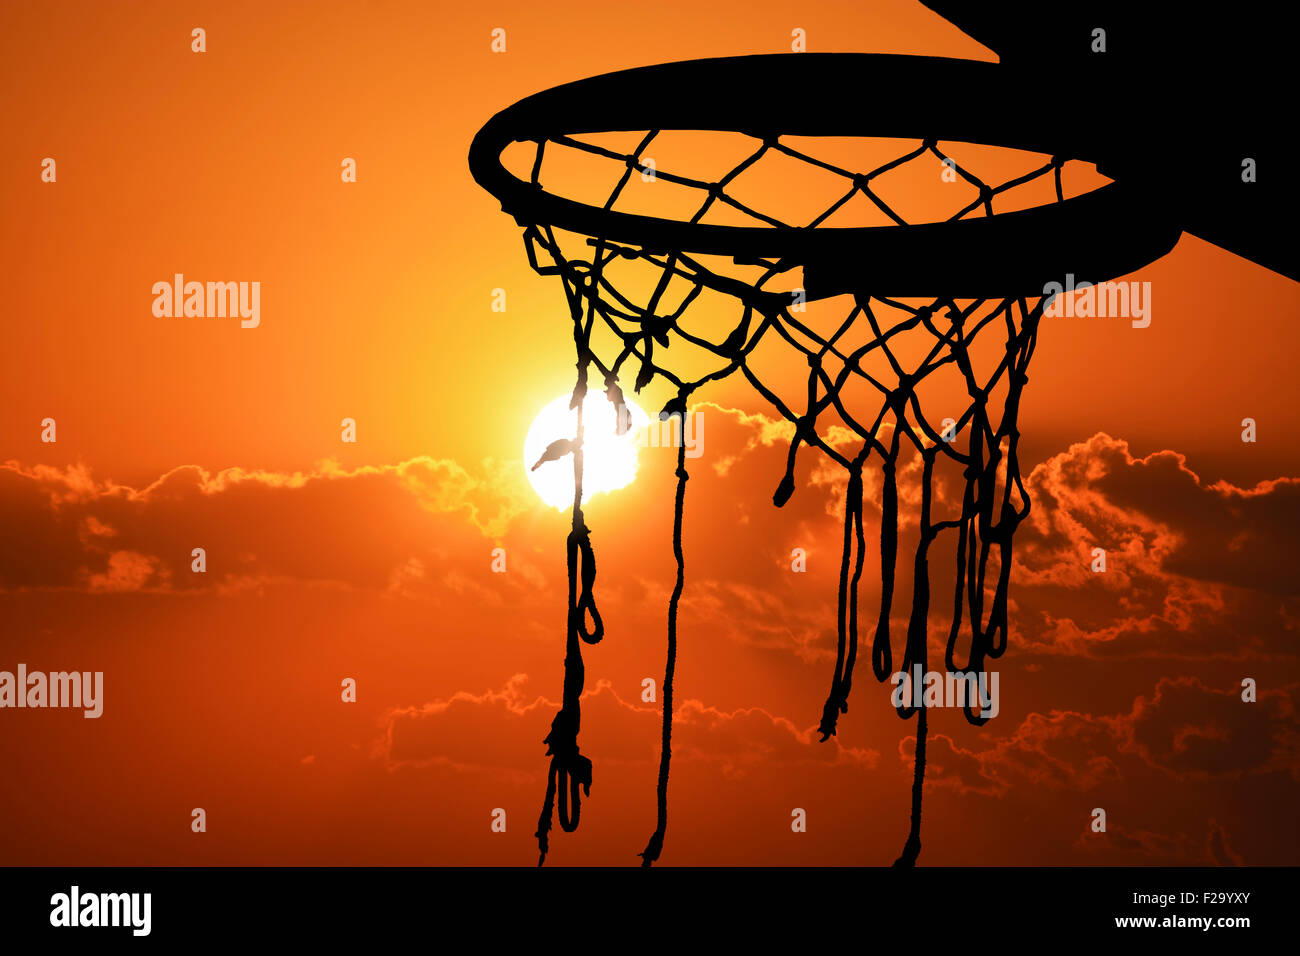 Basketball hoop outdoor in the sunset silhouette - Stock Image